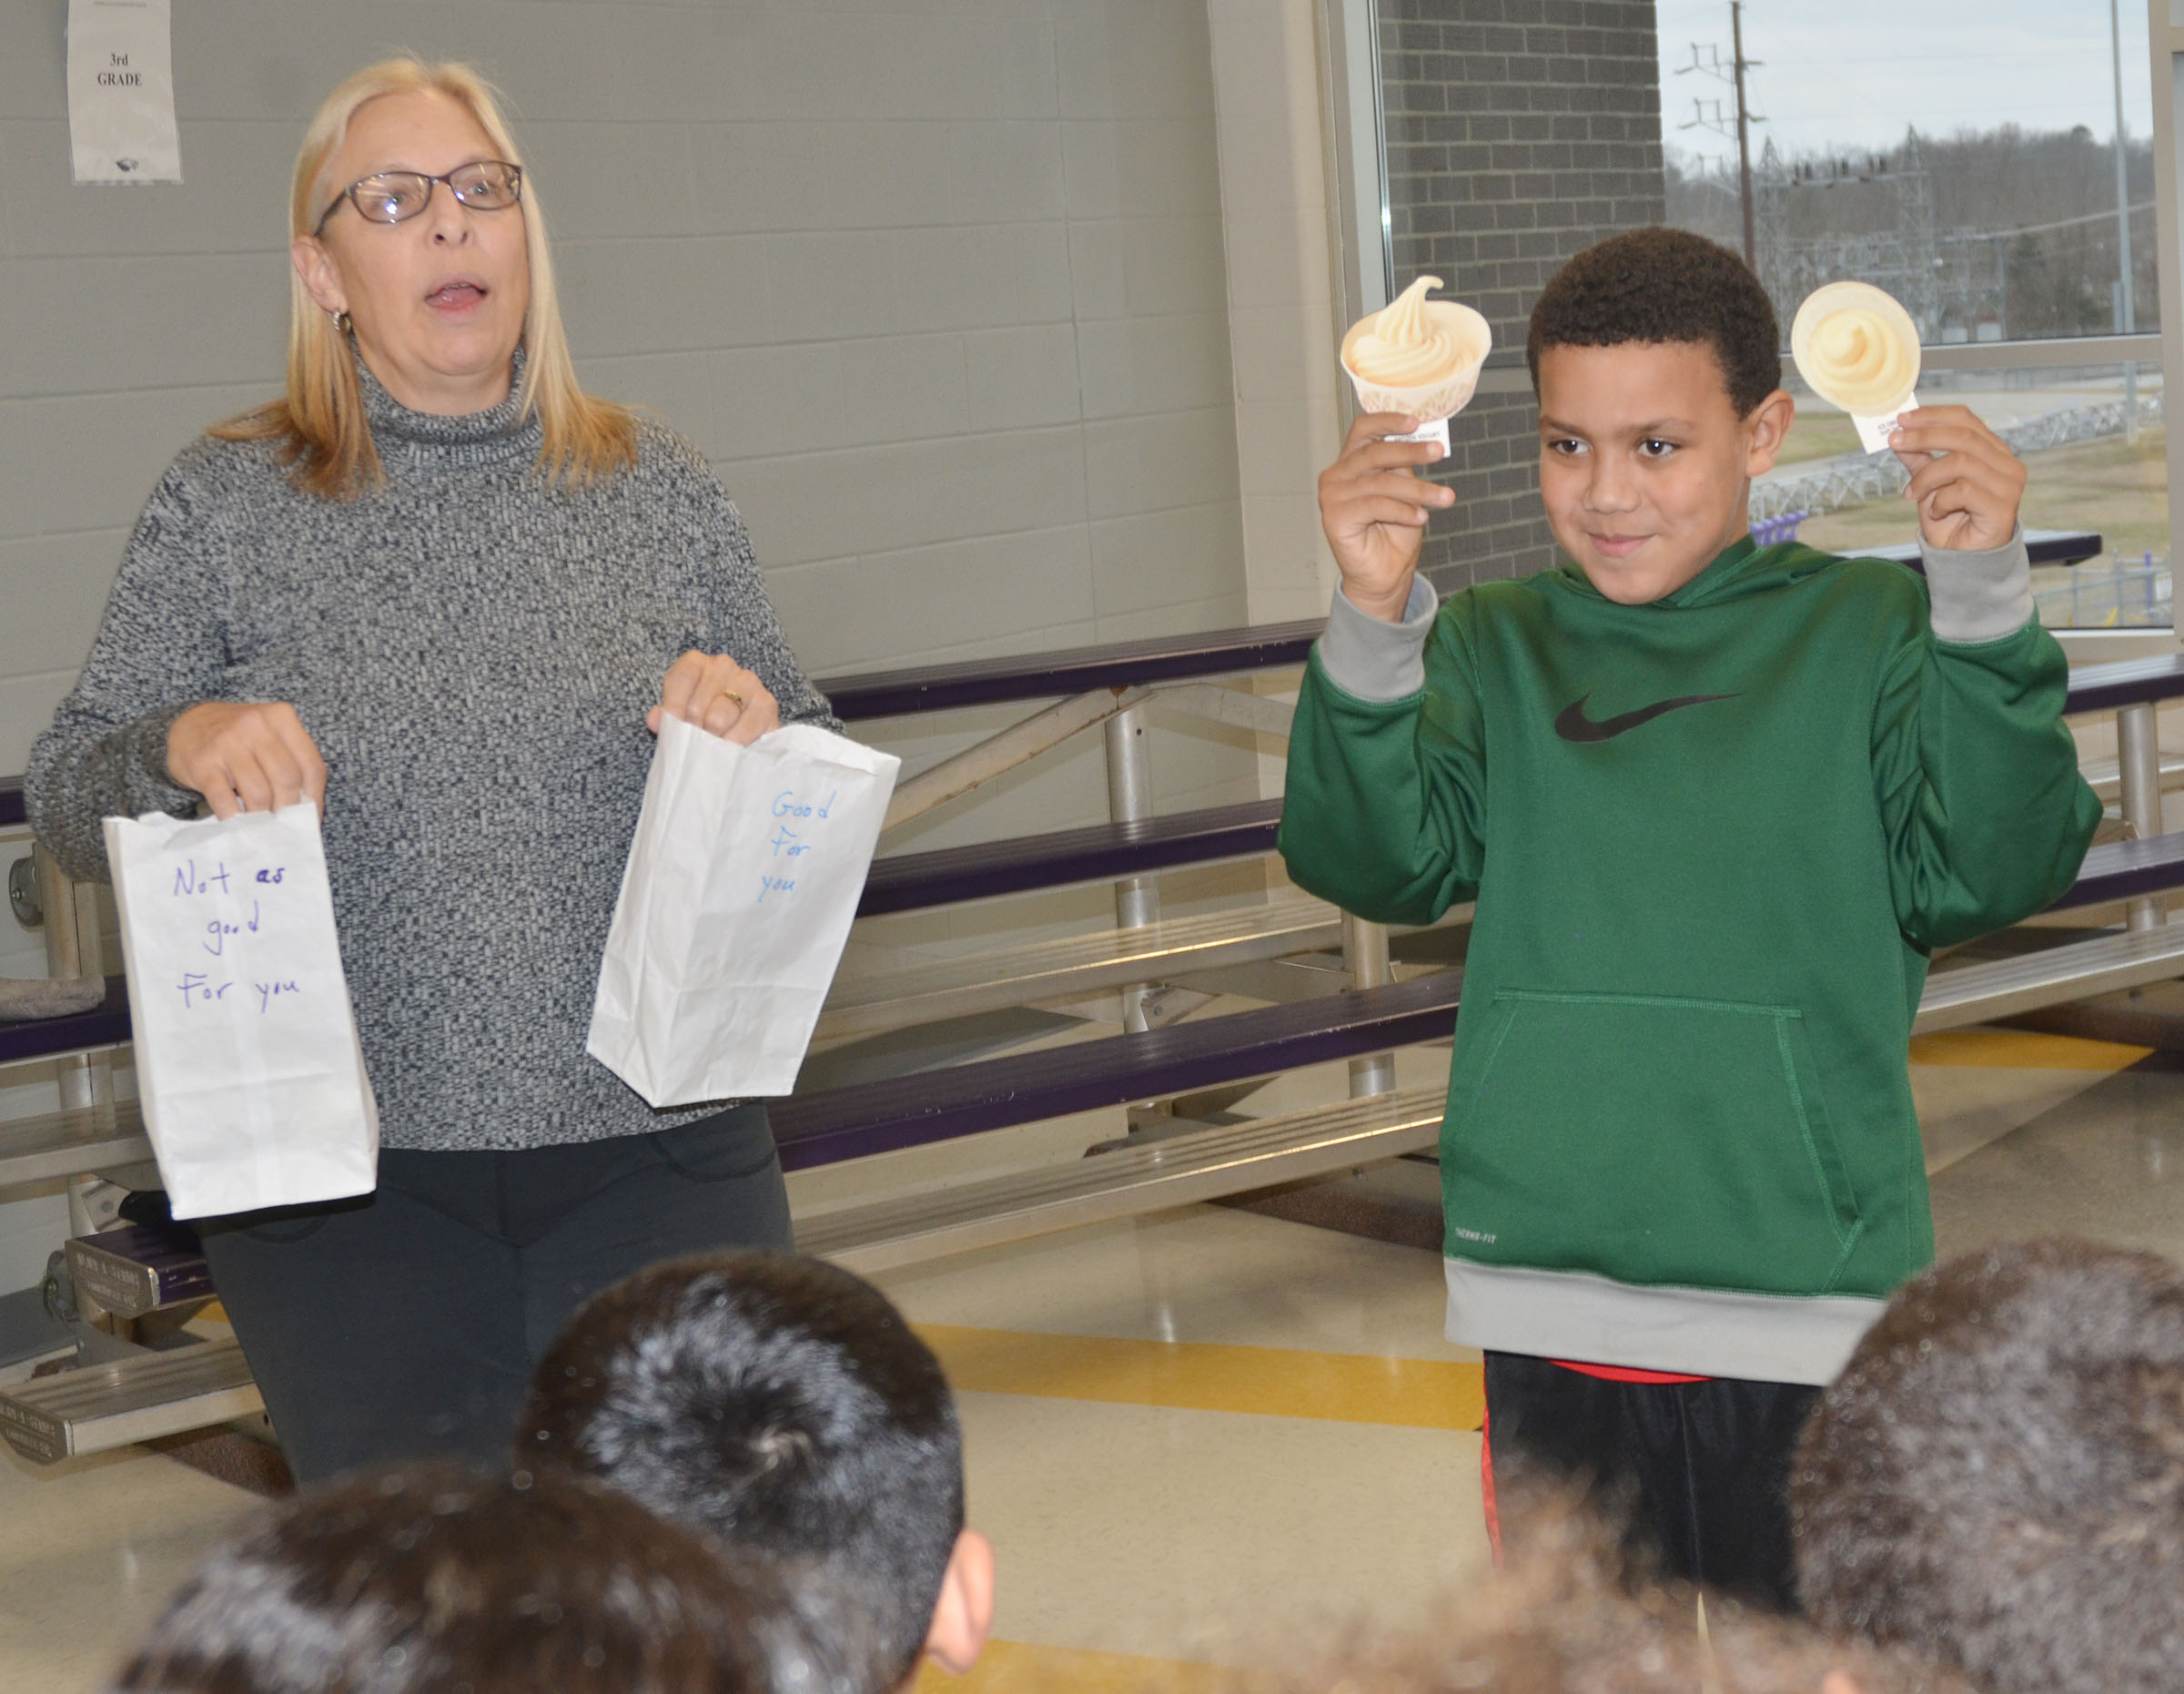 CES third-grader Christian Hart and Angie Freeman, expanded foods and nutrition program assistant at Taylor County Extension Office, ask the group which is healthier, ice cream or frozen yogurt.